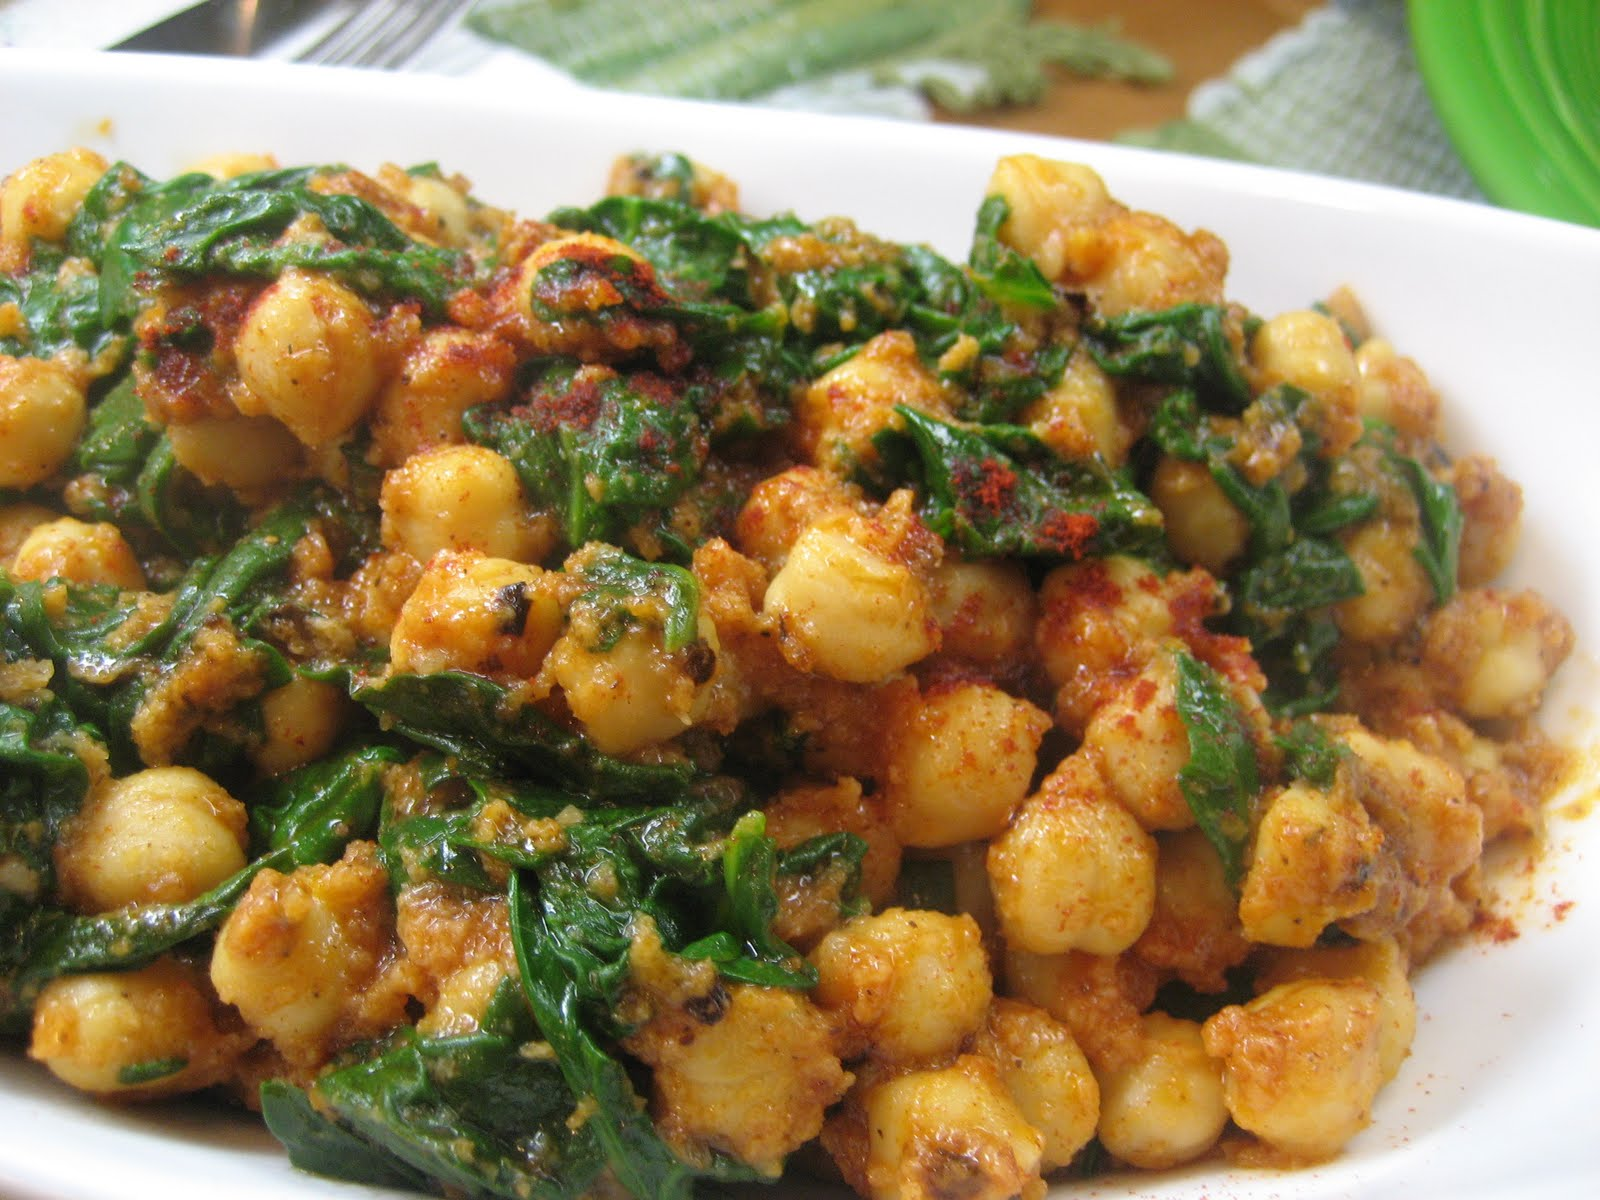 Elizabeth's Dutch Oven: Spinach and Chick Peas